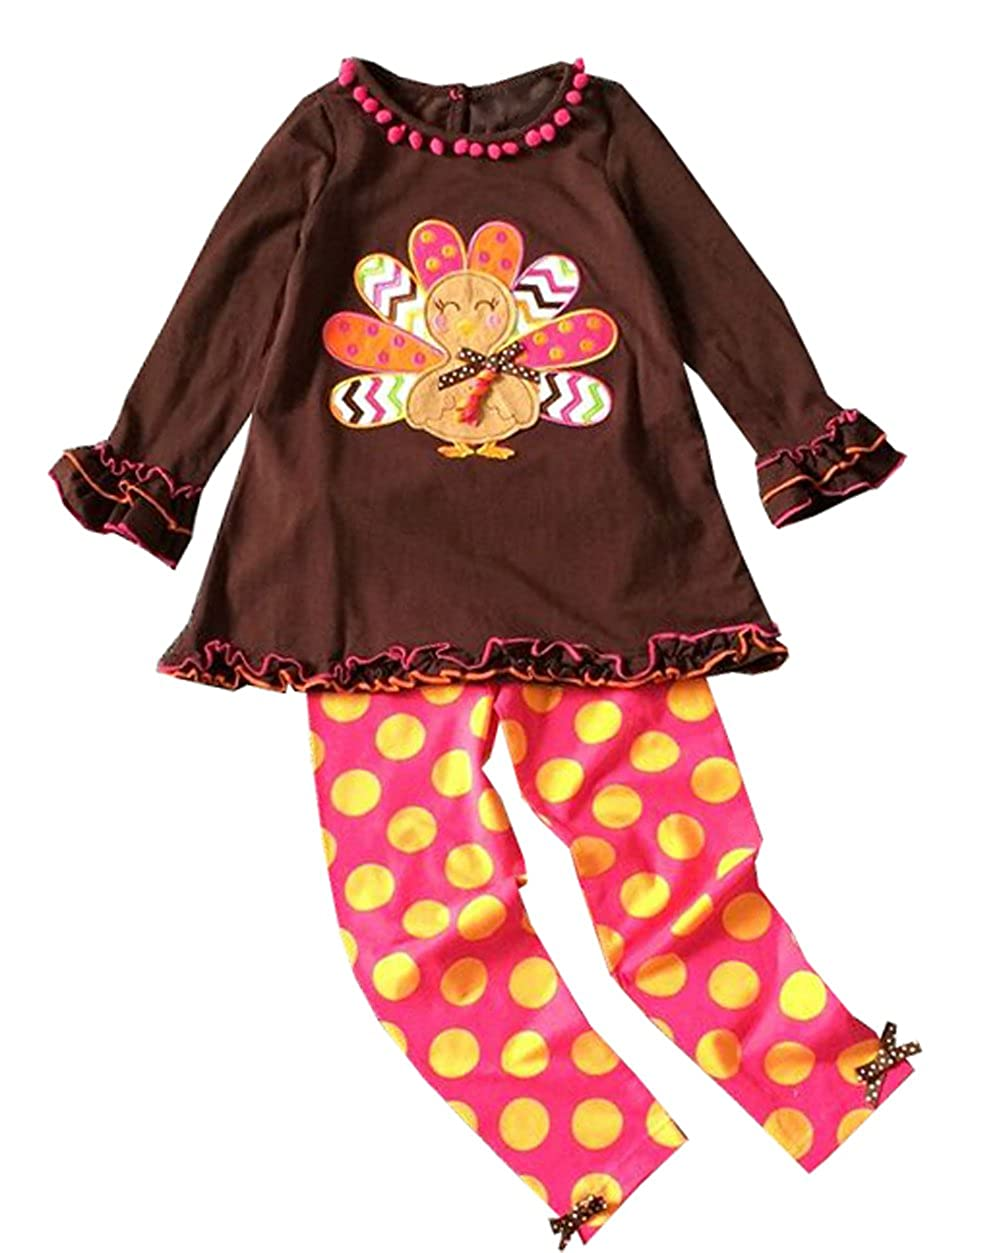 ab41fc0af Amazon.com  Infant Baby Girls Thanksgiving Outfits Brown Turkey Dot ...